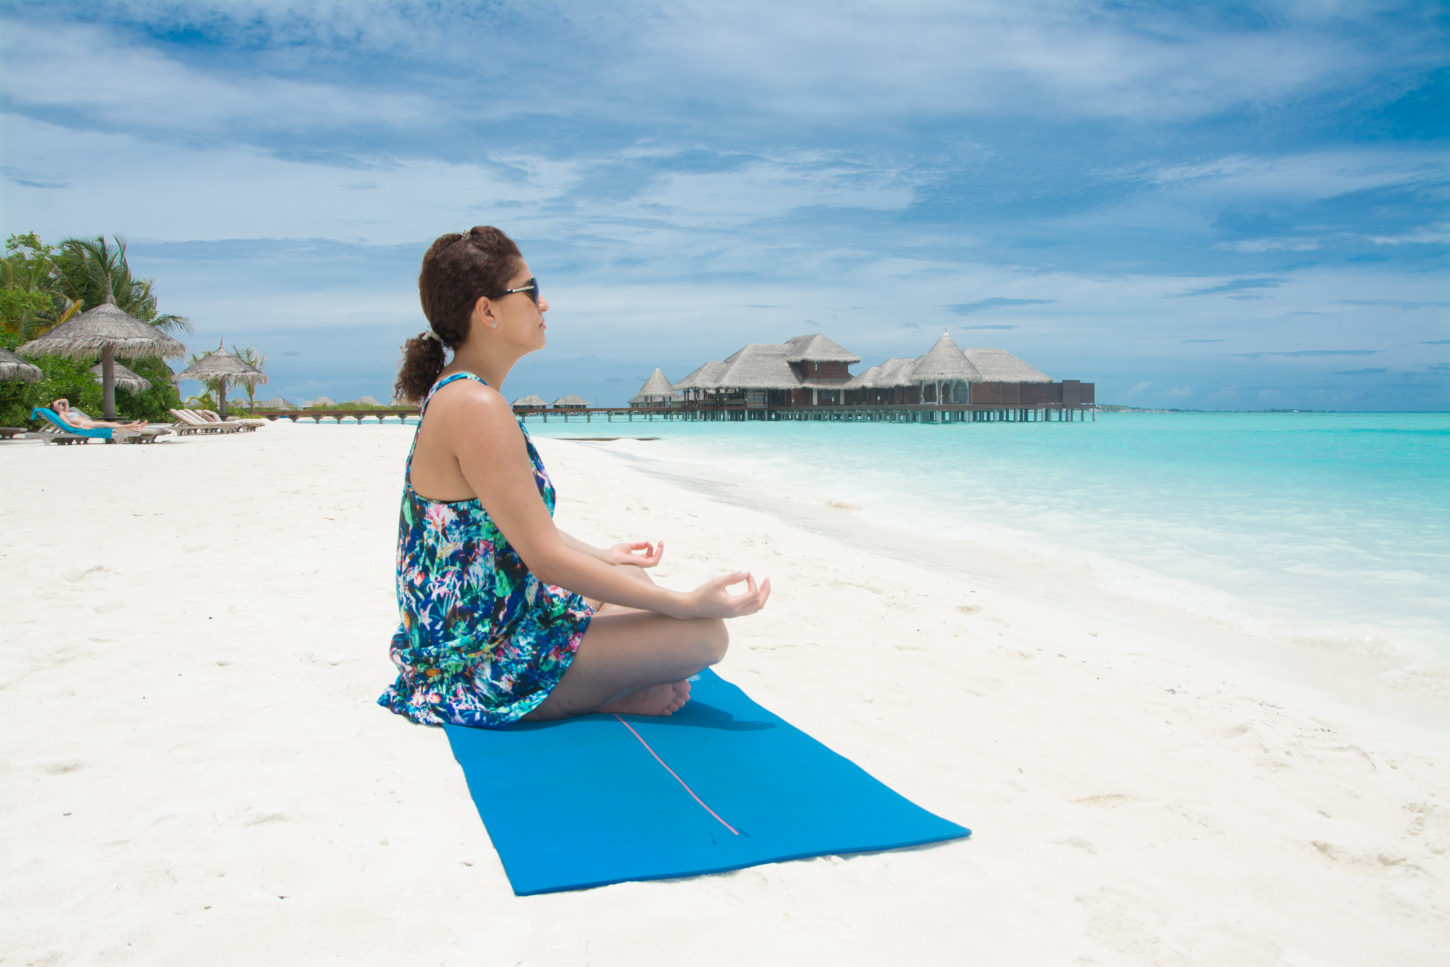 Yoga at the beach at Anantara Dhigu resort